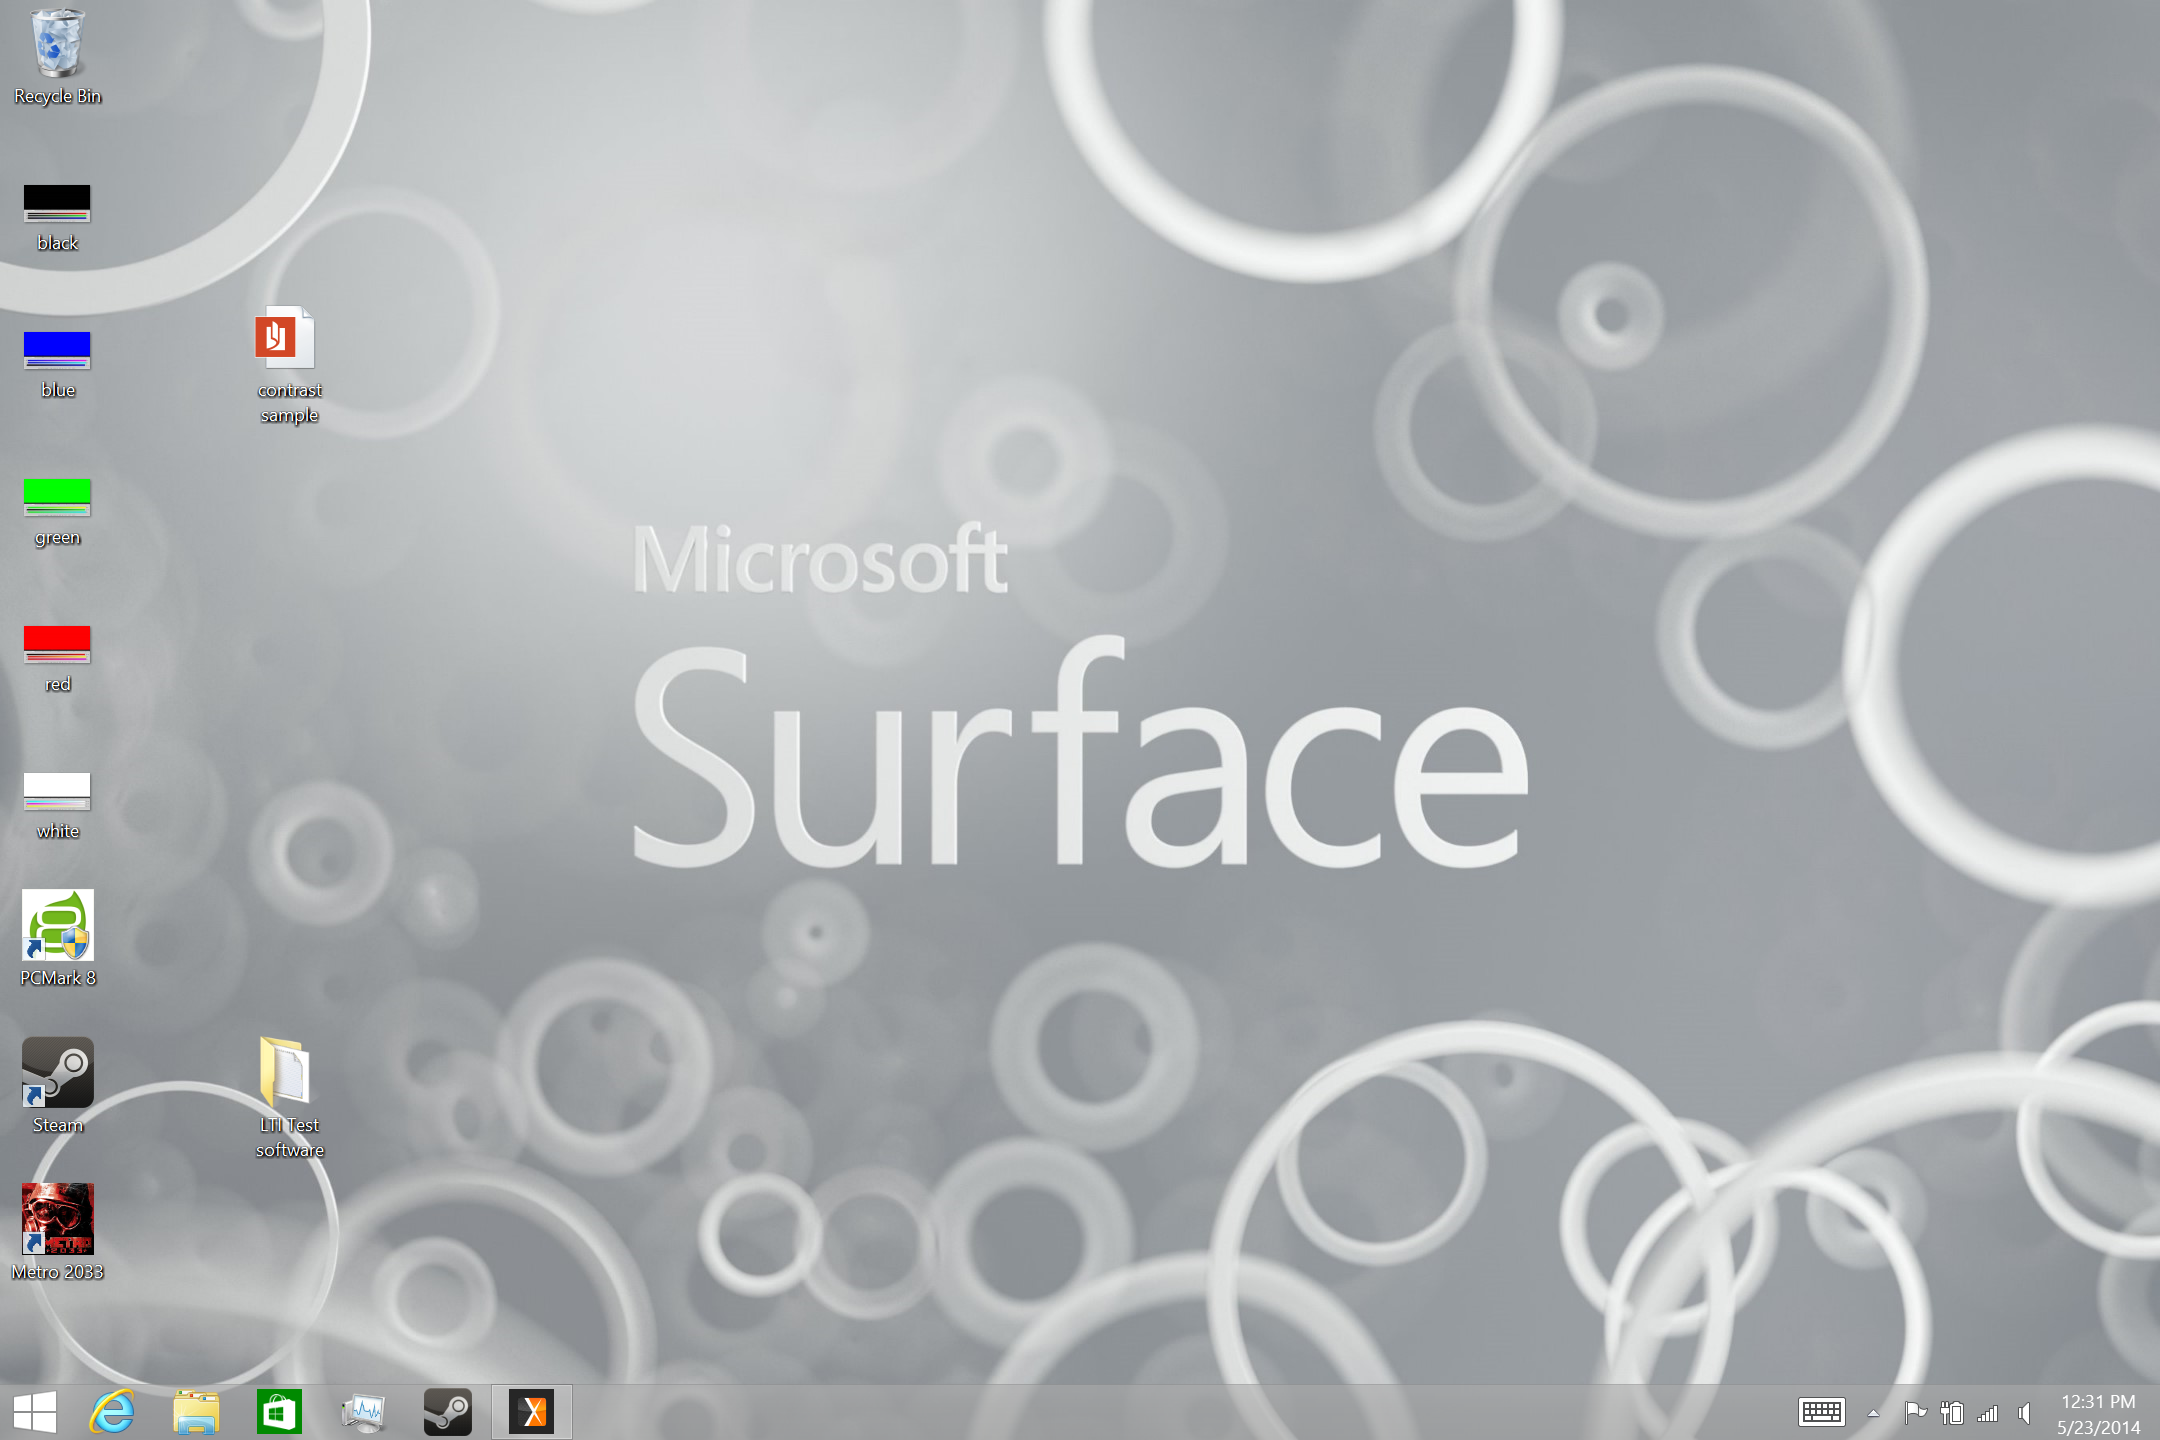 A screenshot of the Microsoft Surface 3's legacy desktop.